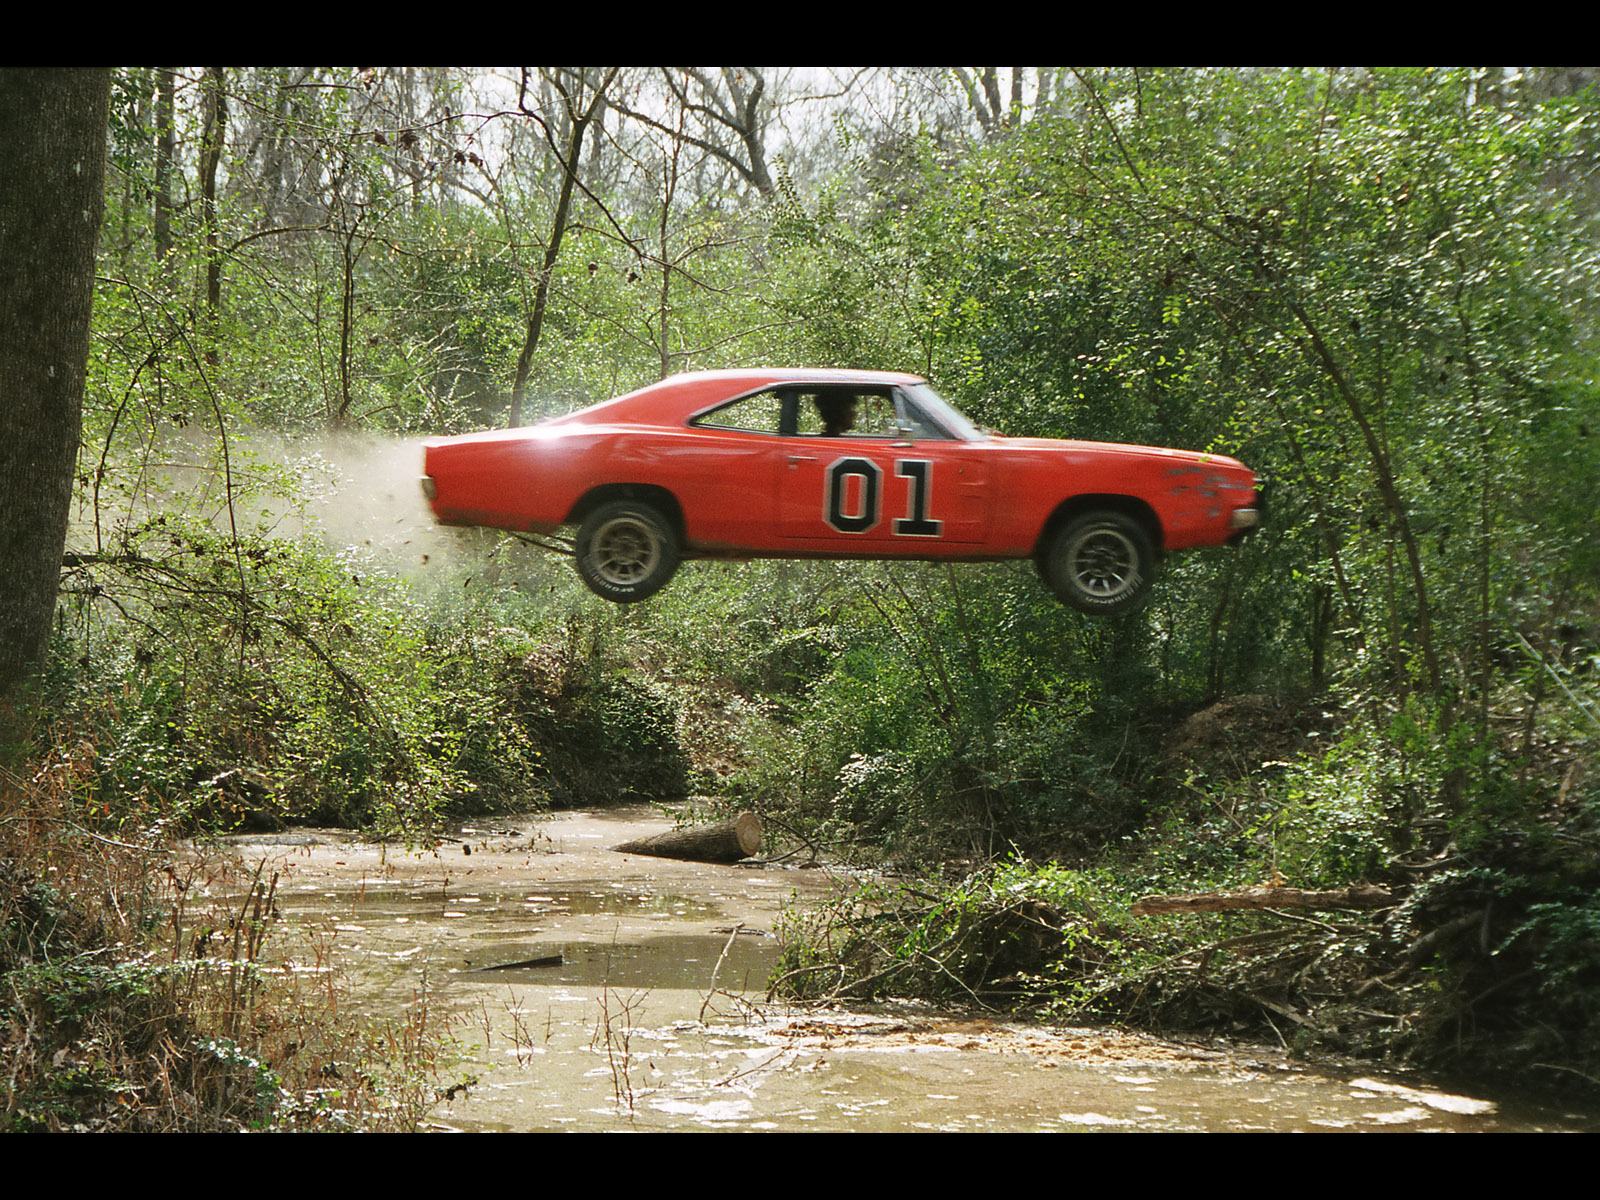 General Lee01 http://www.amcarguide.com/uncategorized/the-general-lee-1969-charger/